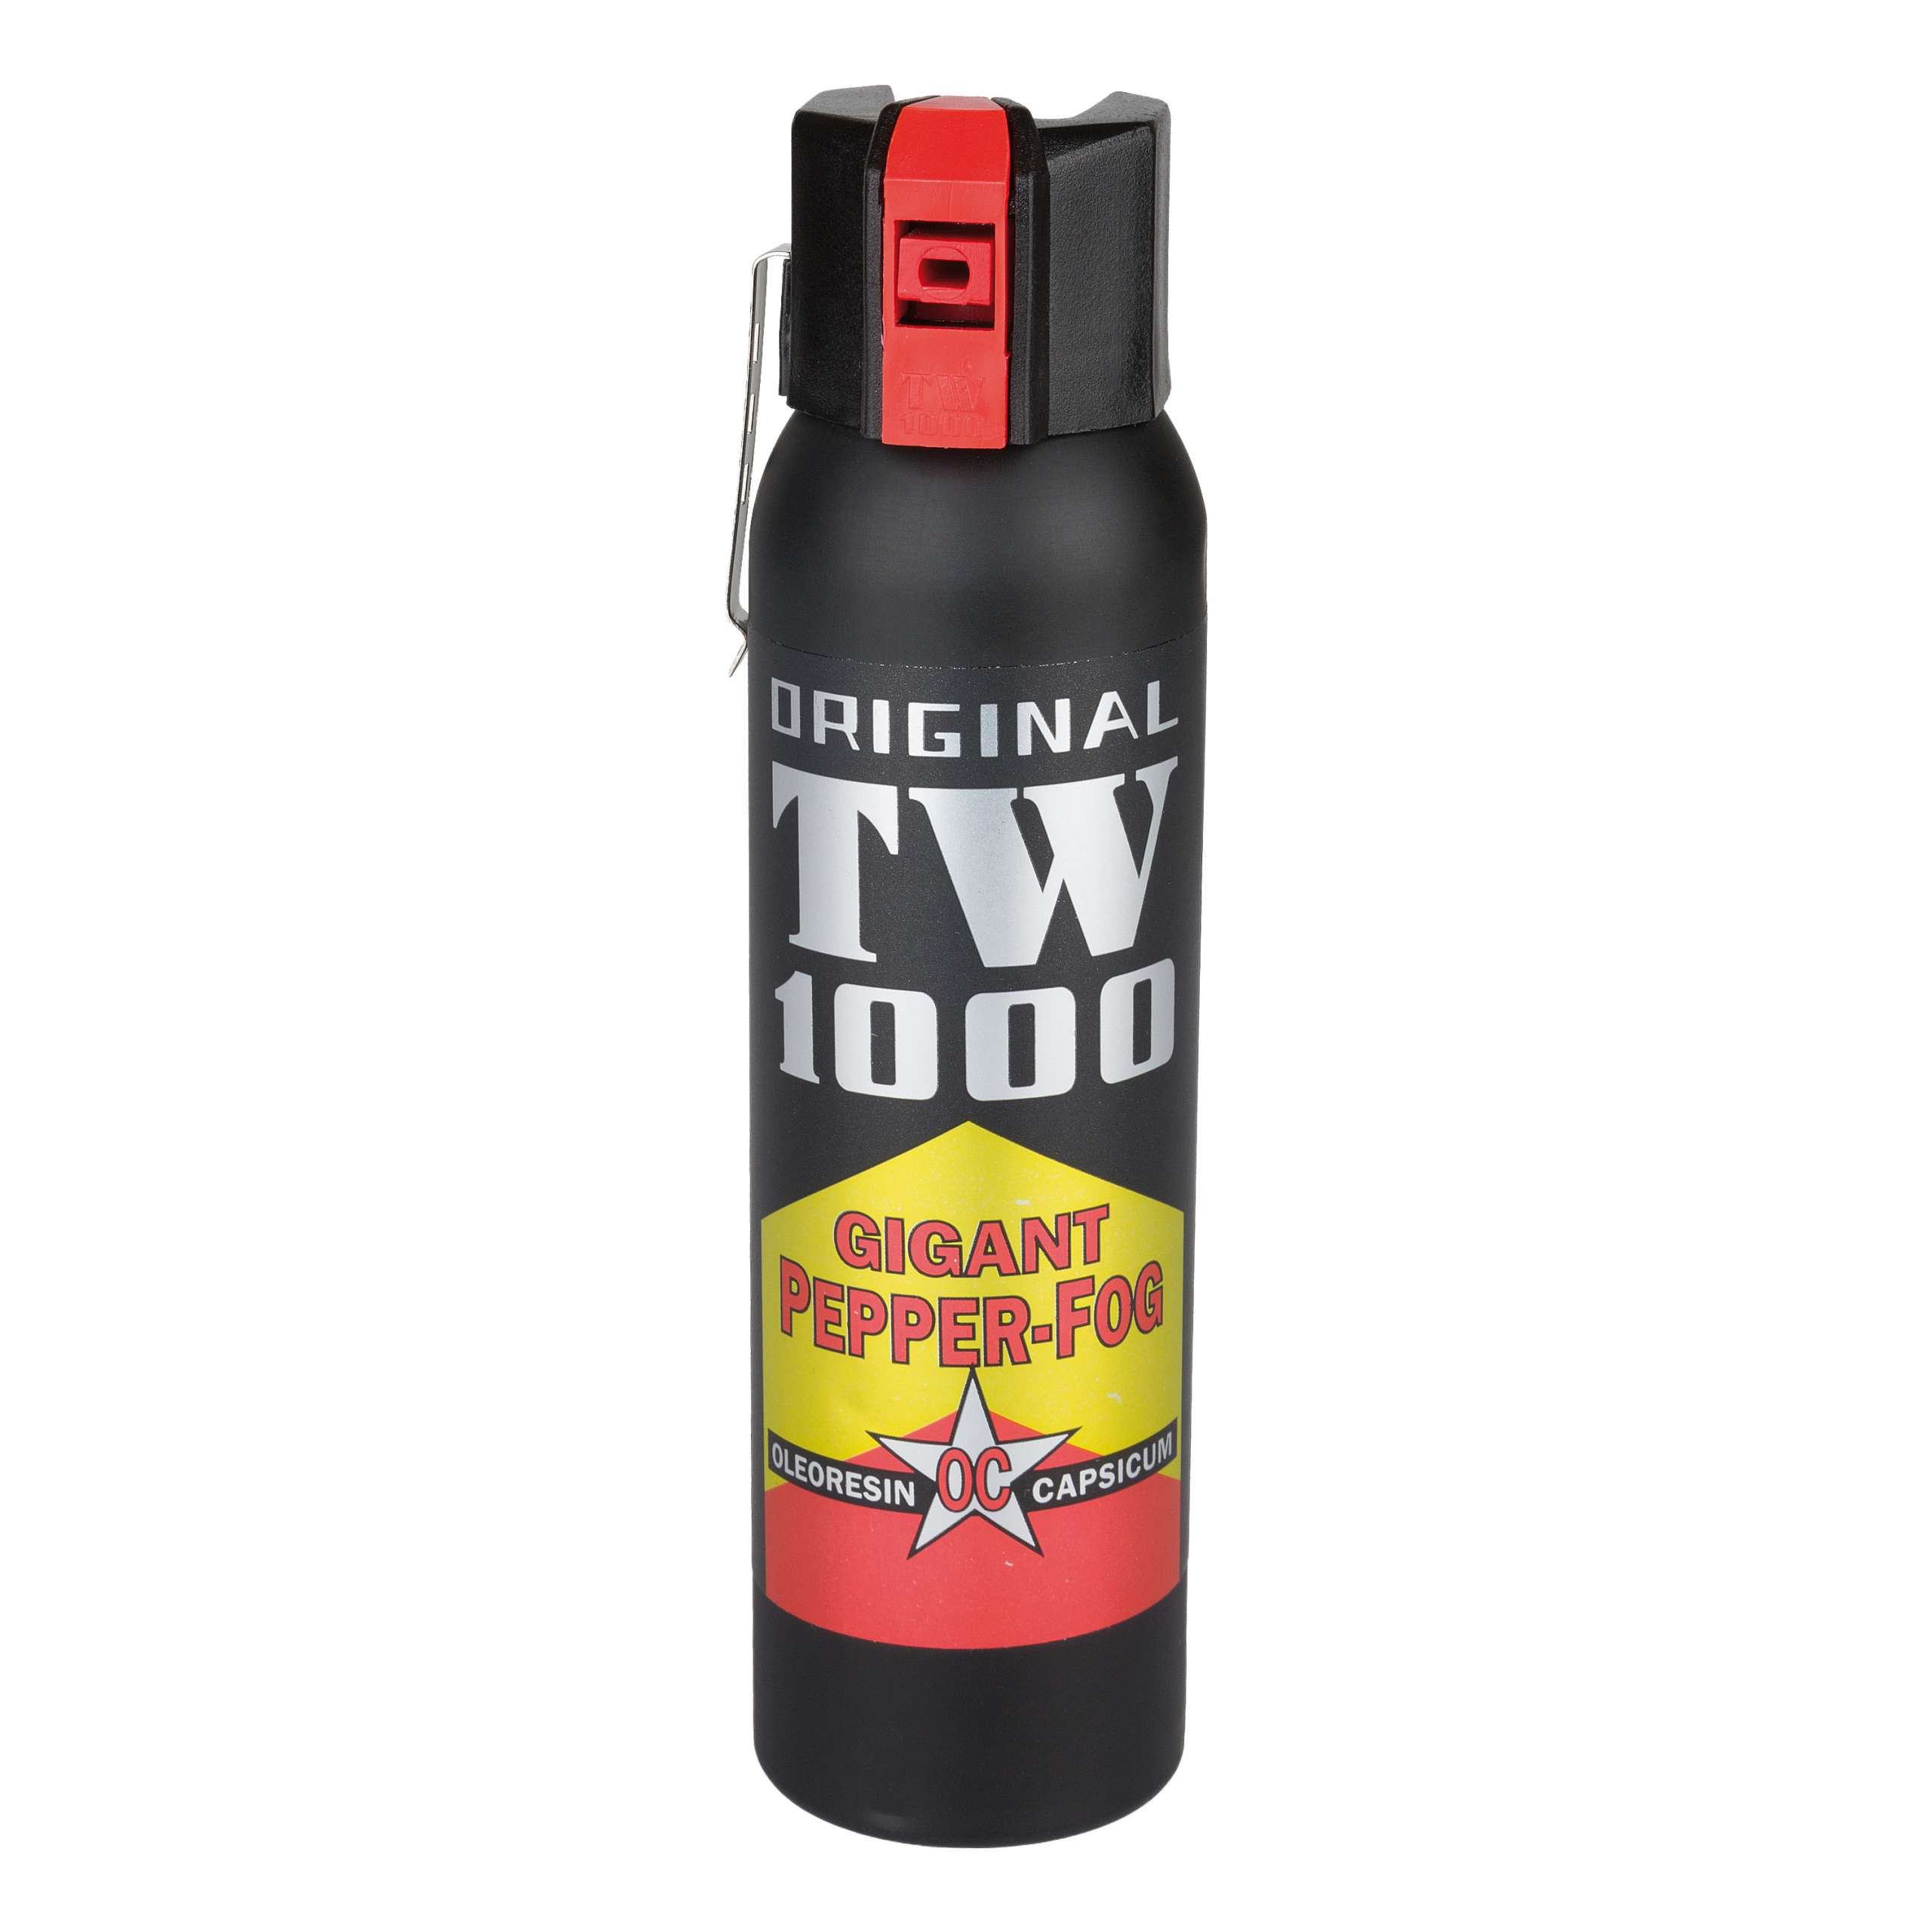 TW1000 Pepper FOG Gigant 150 ml